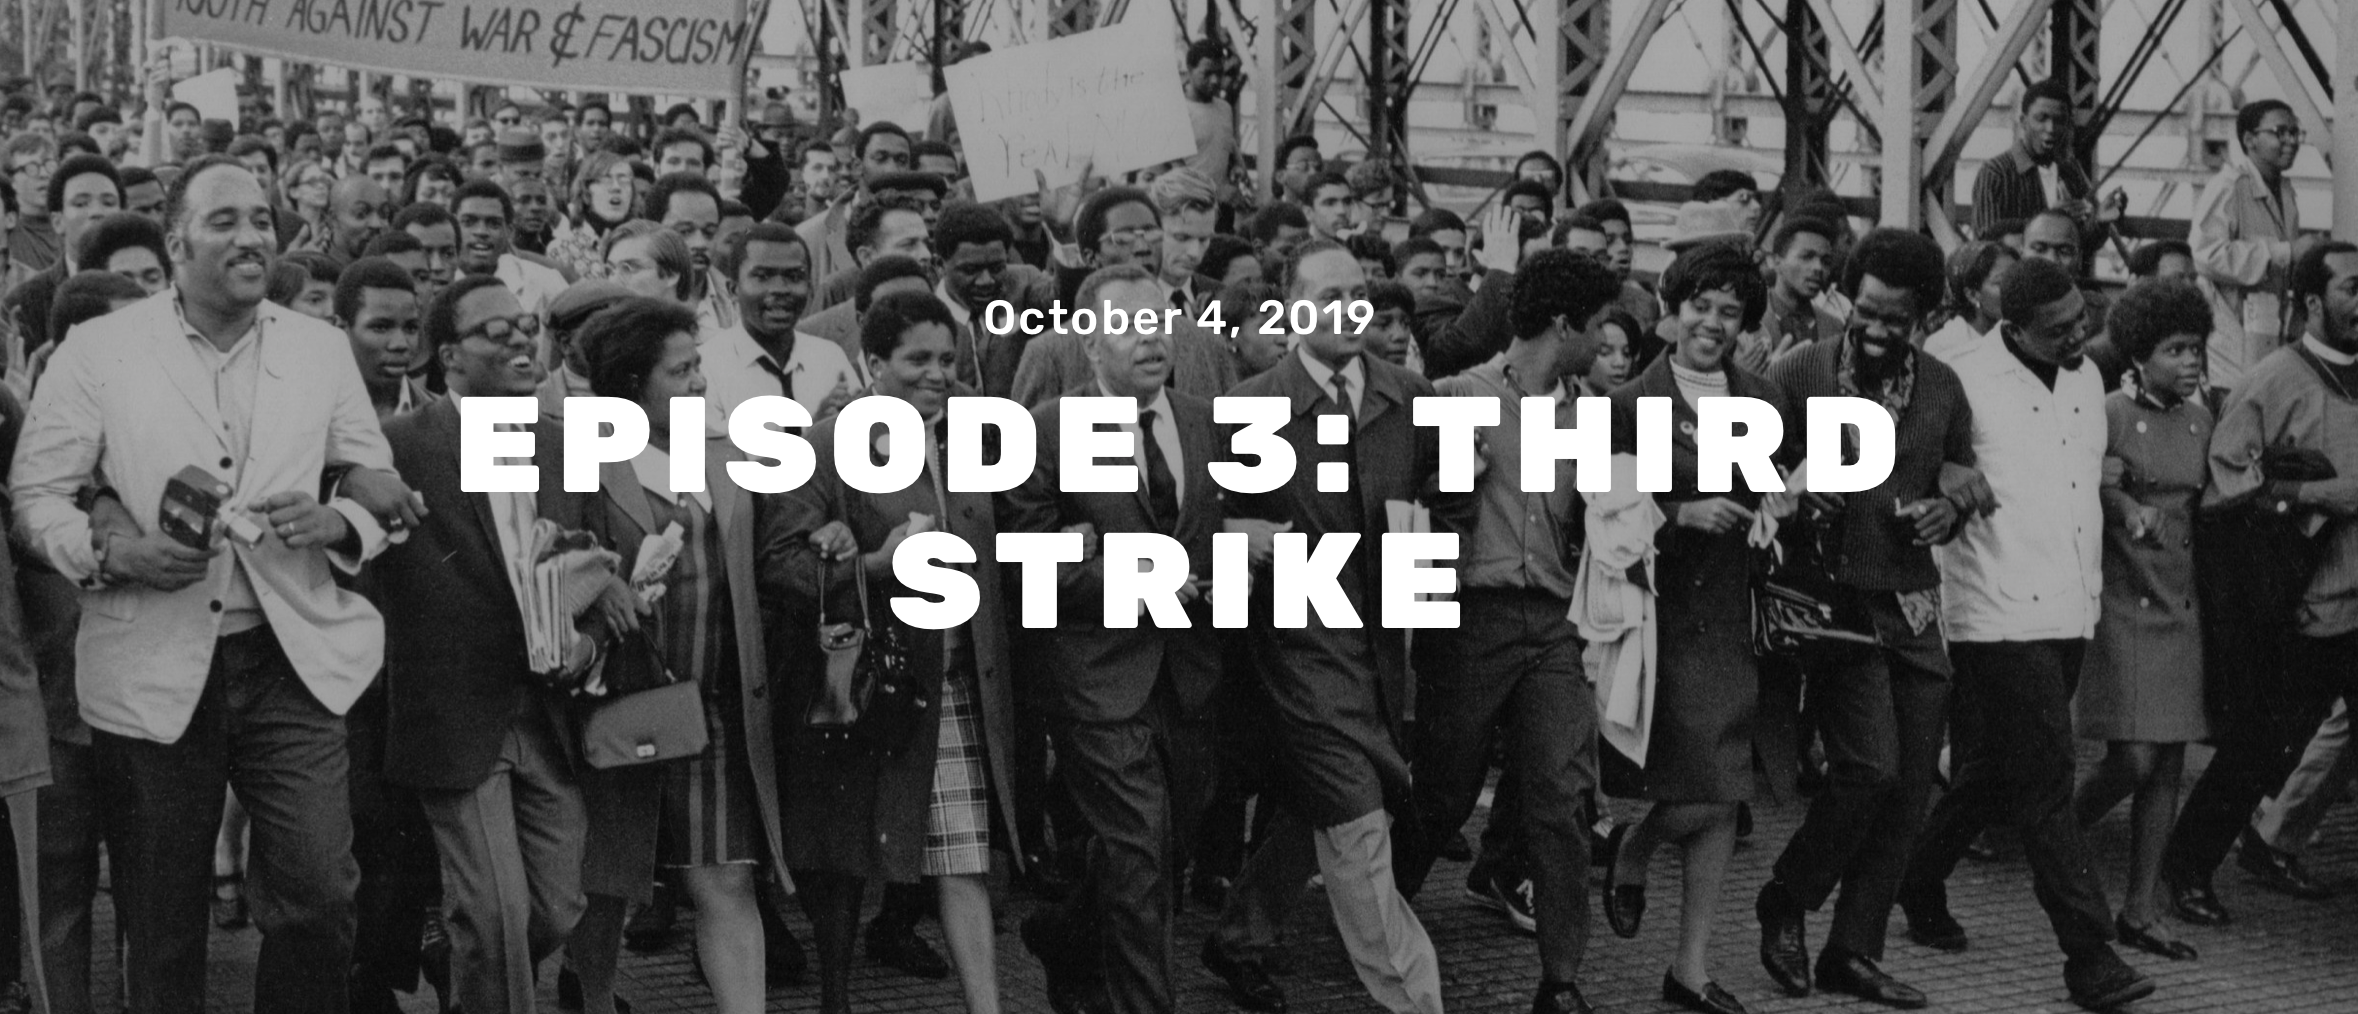 In the fall of 1968, New York City teachers went on strike three times, in reaction to an experiment in community control of schools in Ocean Hill-Brownsville, Brooklyn. The third strike was the longest, and the ugliest.  The movement for community control tapped into a powerful desire among Black and brown people across New York City to educate their own. But the backlash was ferocious. The confrontation at Ocean Hill-Brownsville fractured the connection between teachers and families, between the labor movement and the civil rights movement, between Black and Jewish New Yorkers. Some of these wounds have never really healed.  But as the strike dragged on for seven weeks, schools in Ocean Hill-Brownsville were open for business. And for many students there, the experience was life-changing.